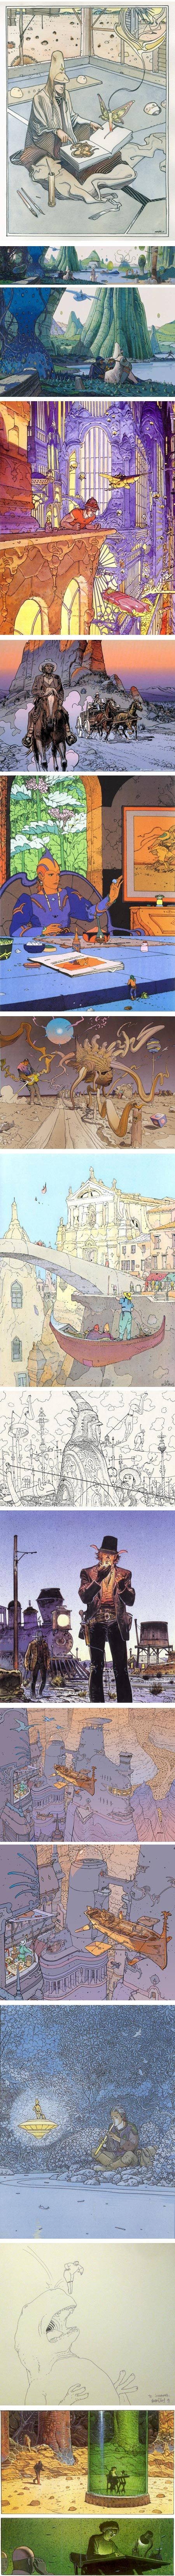 I spent some time trying to select the right images for this post. I found the top one particularly appropriate; if there's any artist that I associate with magic coming to life from the pages of a book, it's French comics artist, illustrator and movie concept artist Jean Giraud, more commonly known by his pen name, Moebius.    I was saddened to learn that Giraud died today, March 10, 2012, at the age of 73.